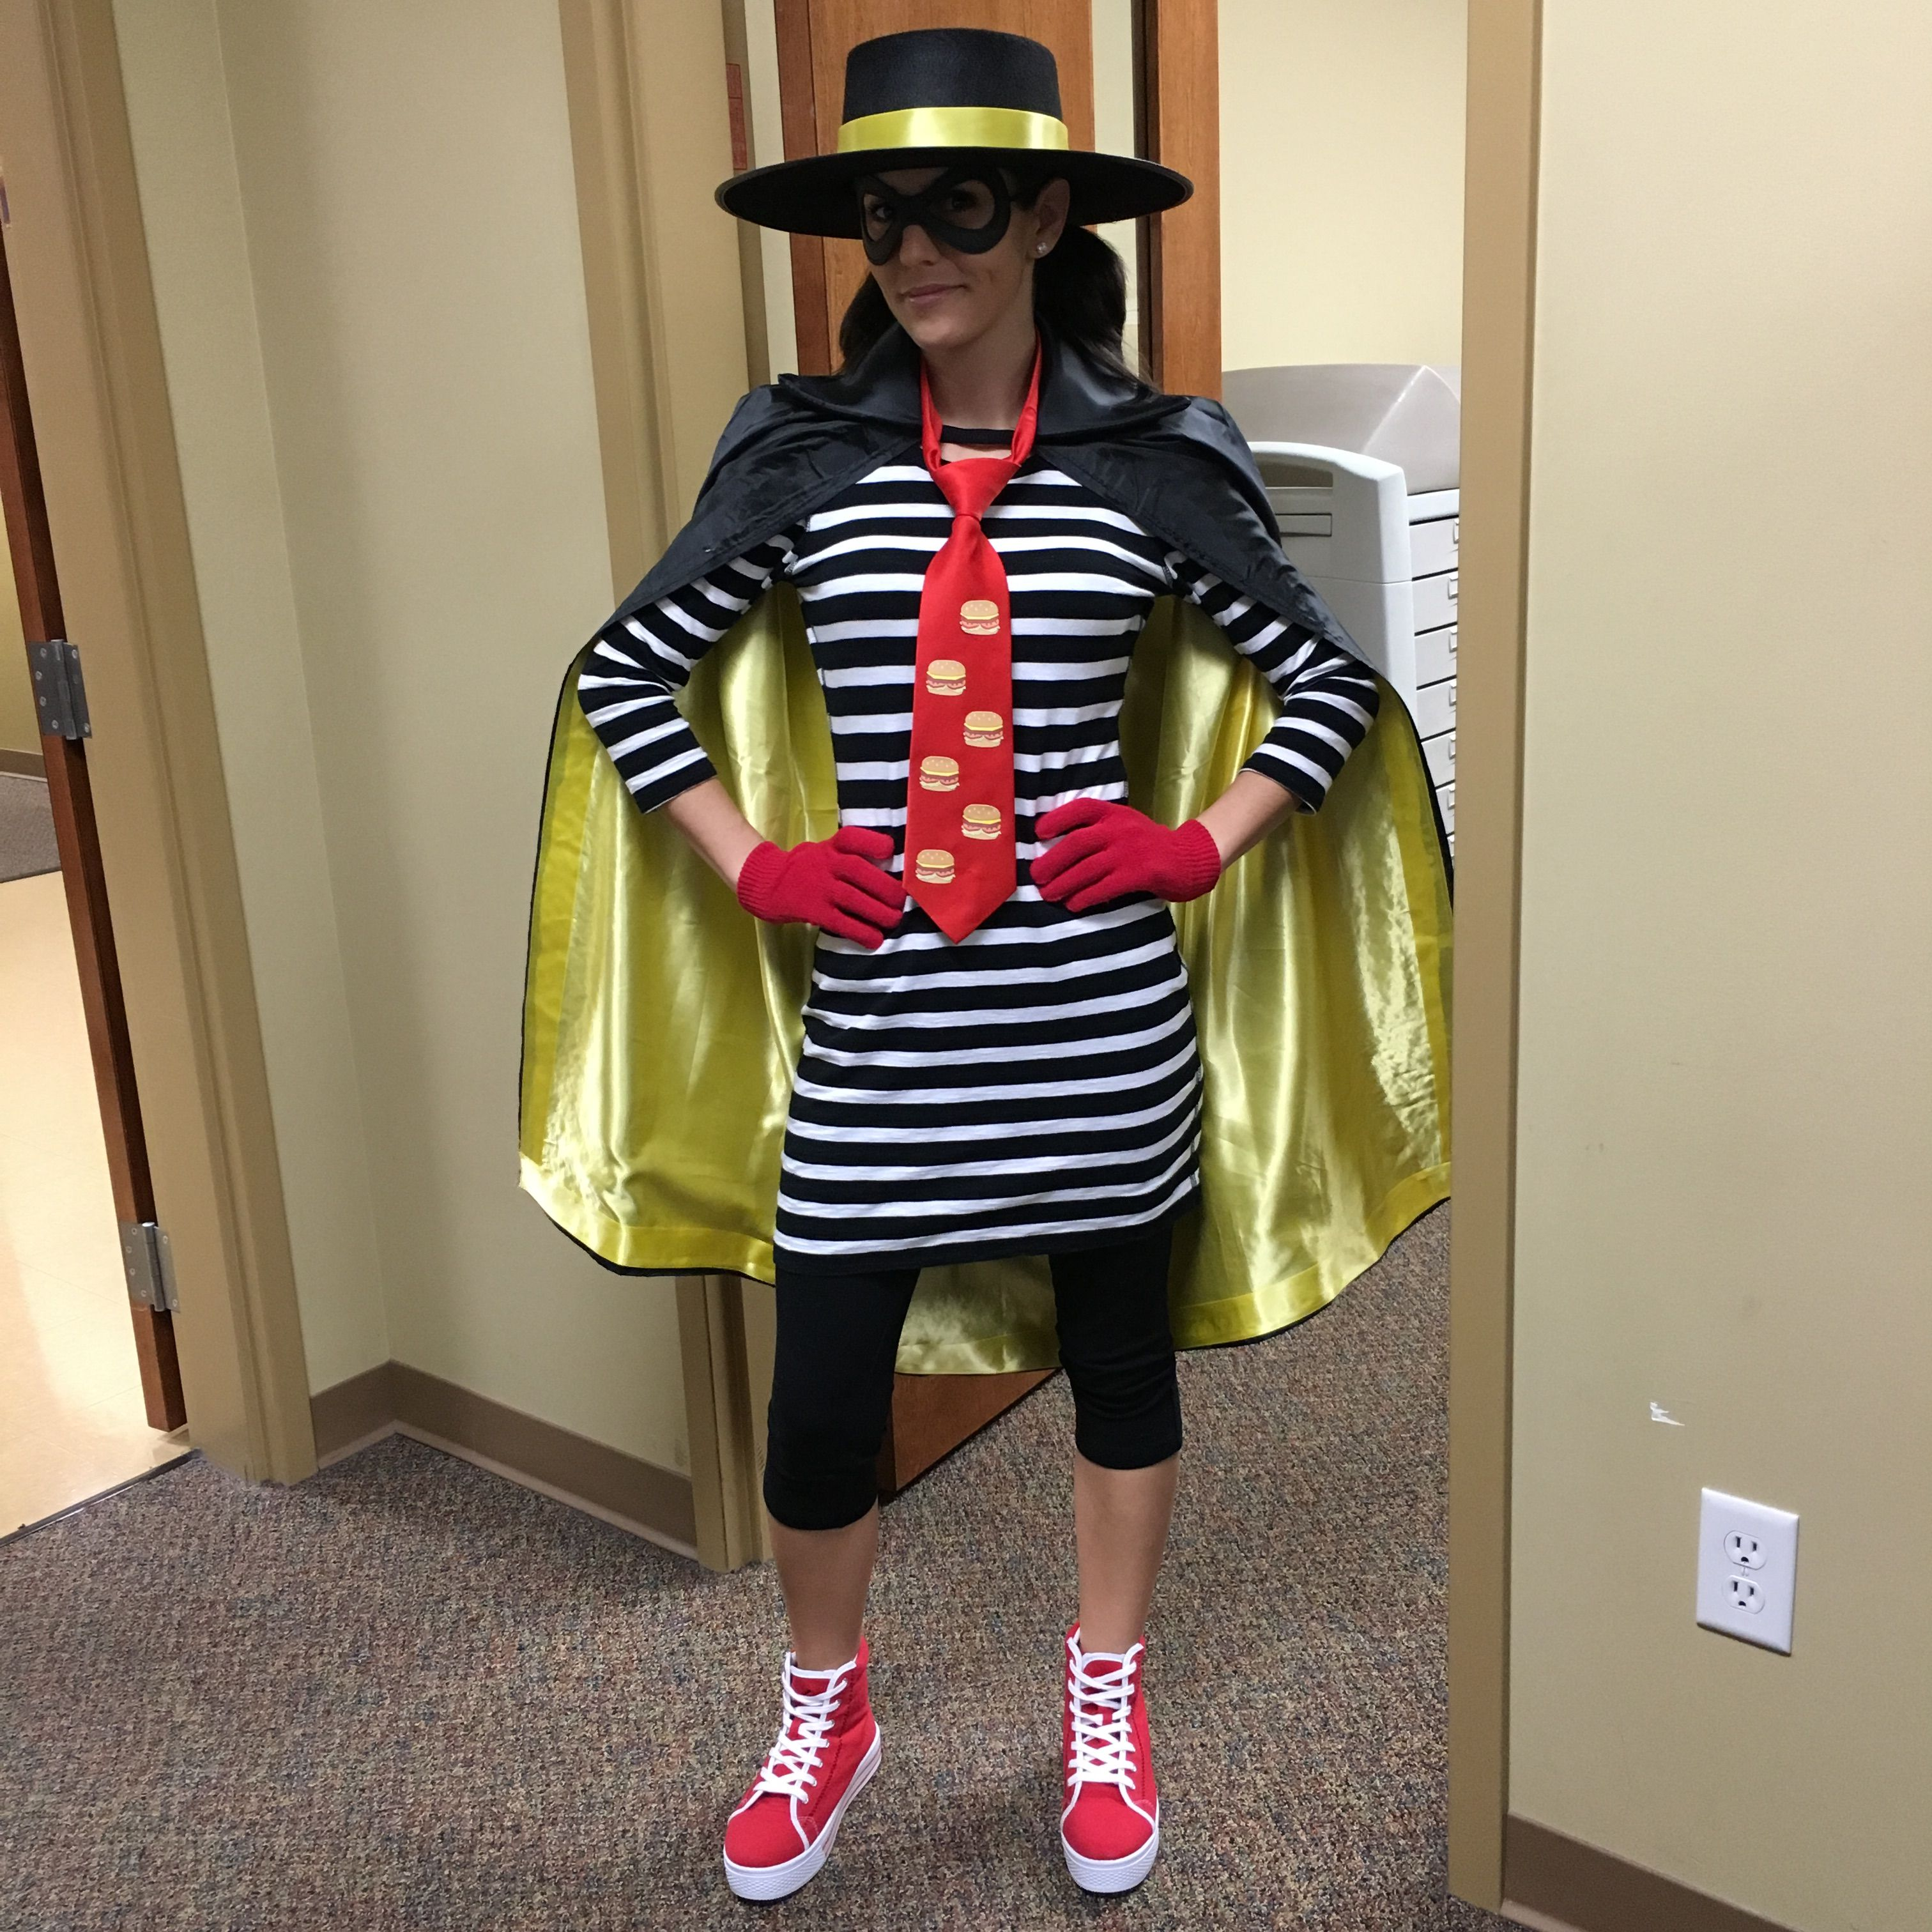 hamburglar halloween costume